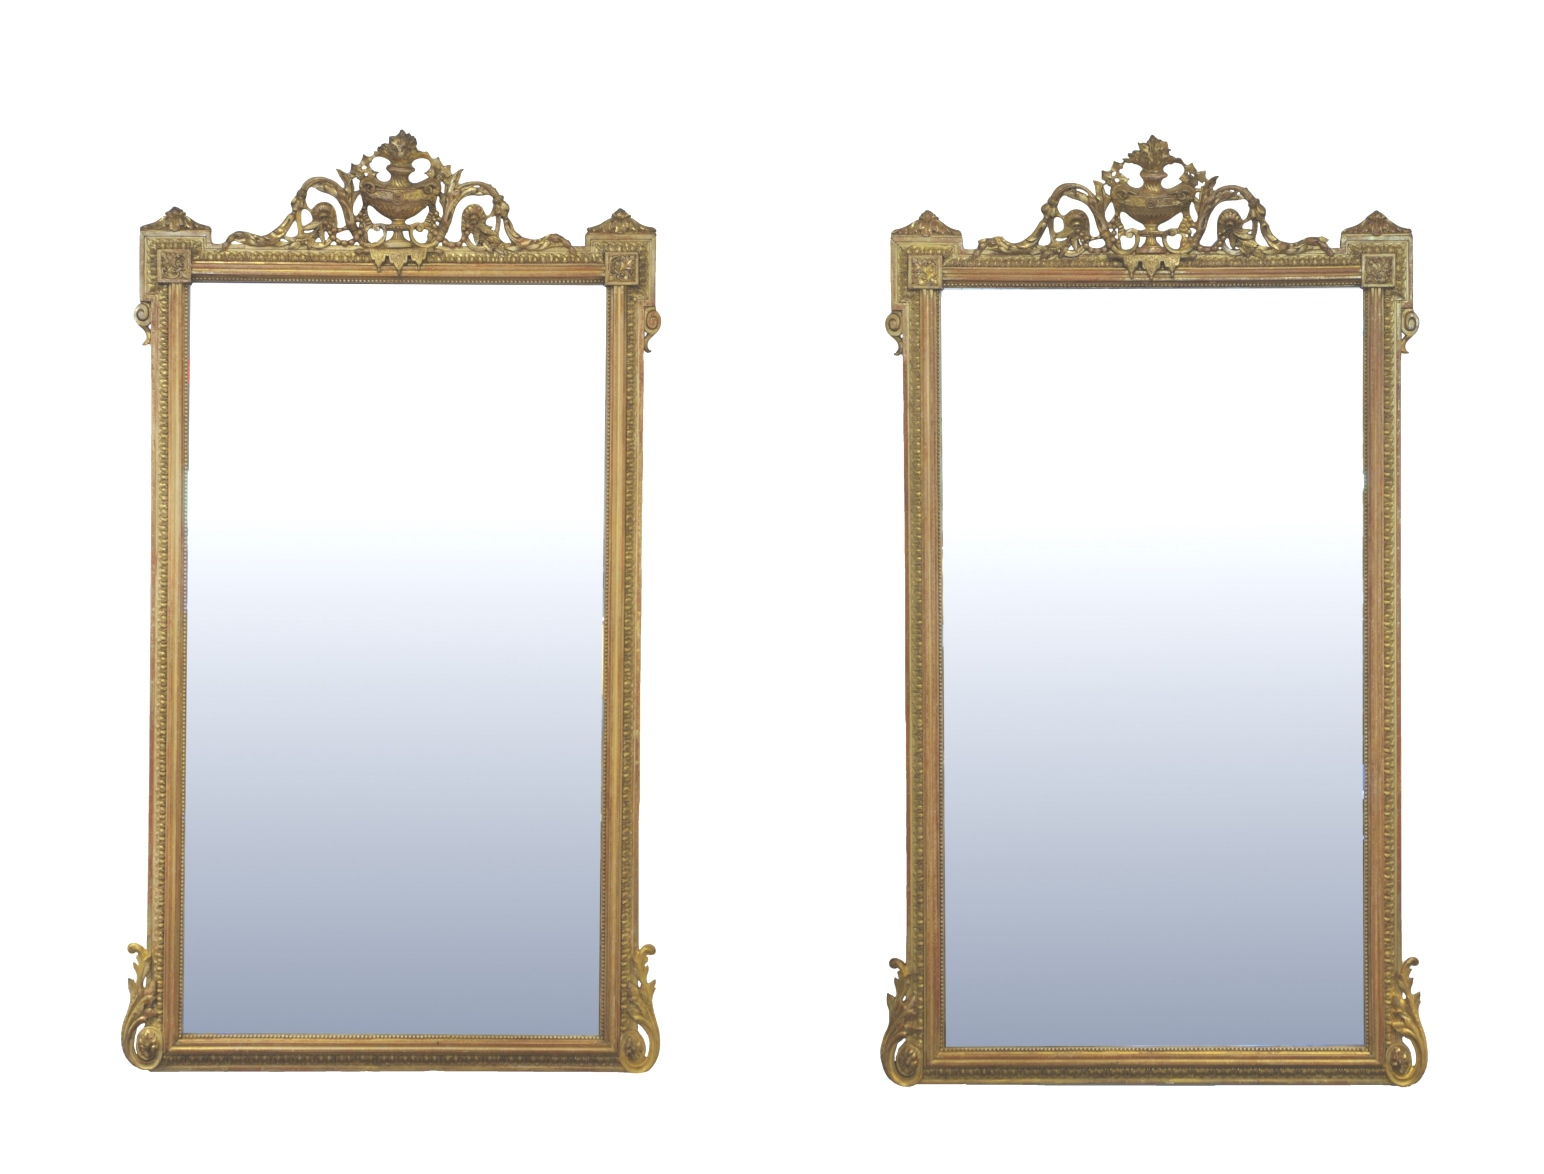 Pair of Louis XVI Style Giltwood Pier Mirrors, c. 1840